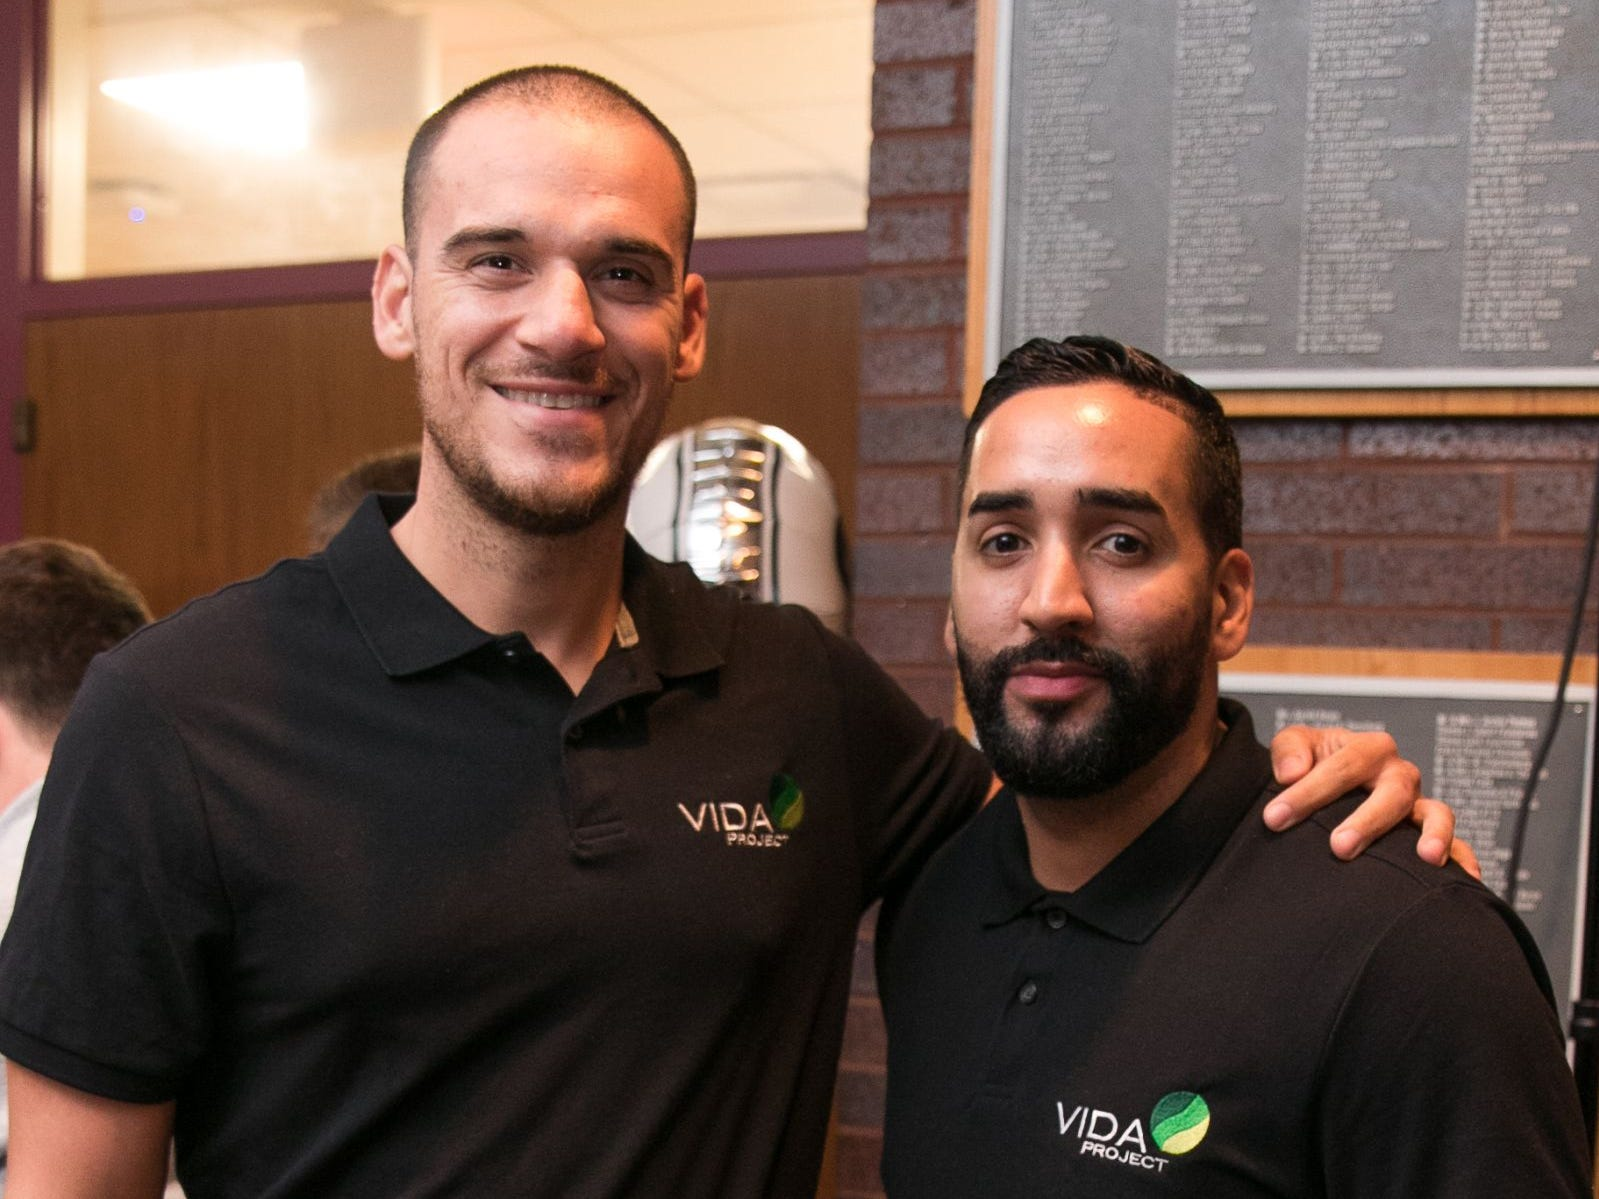 Moises Santos, Gabriel Fuentez - Vida Project. Englewood Health hosted its Men's Health and Football event with former Jets and Giants players and Don La Greca from ESPN radio. Attendees watched the Thursday night football game while receiving advice about staying healthy and tackling health problems early on. 09/20/2018